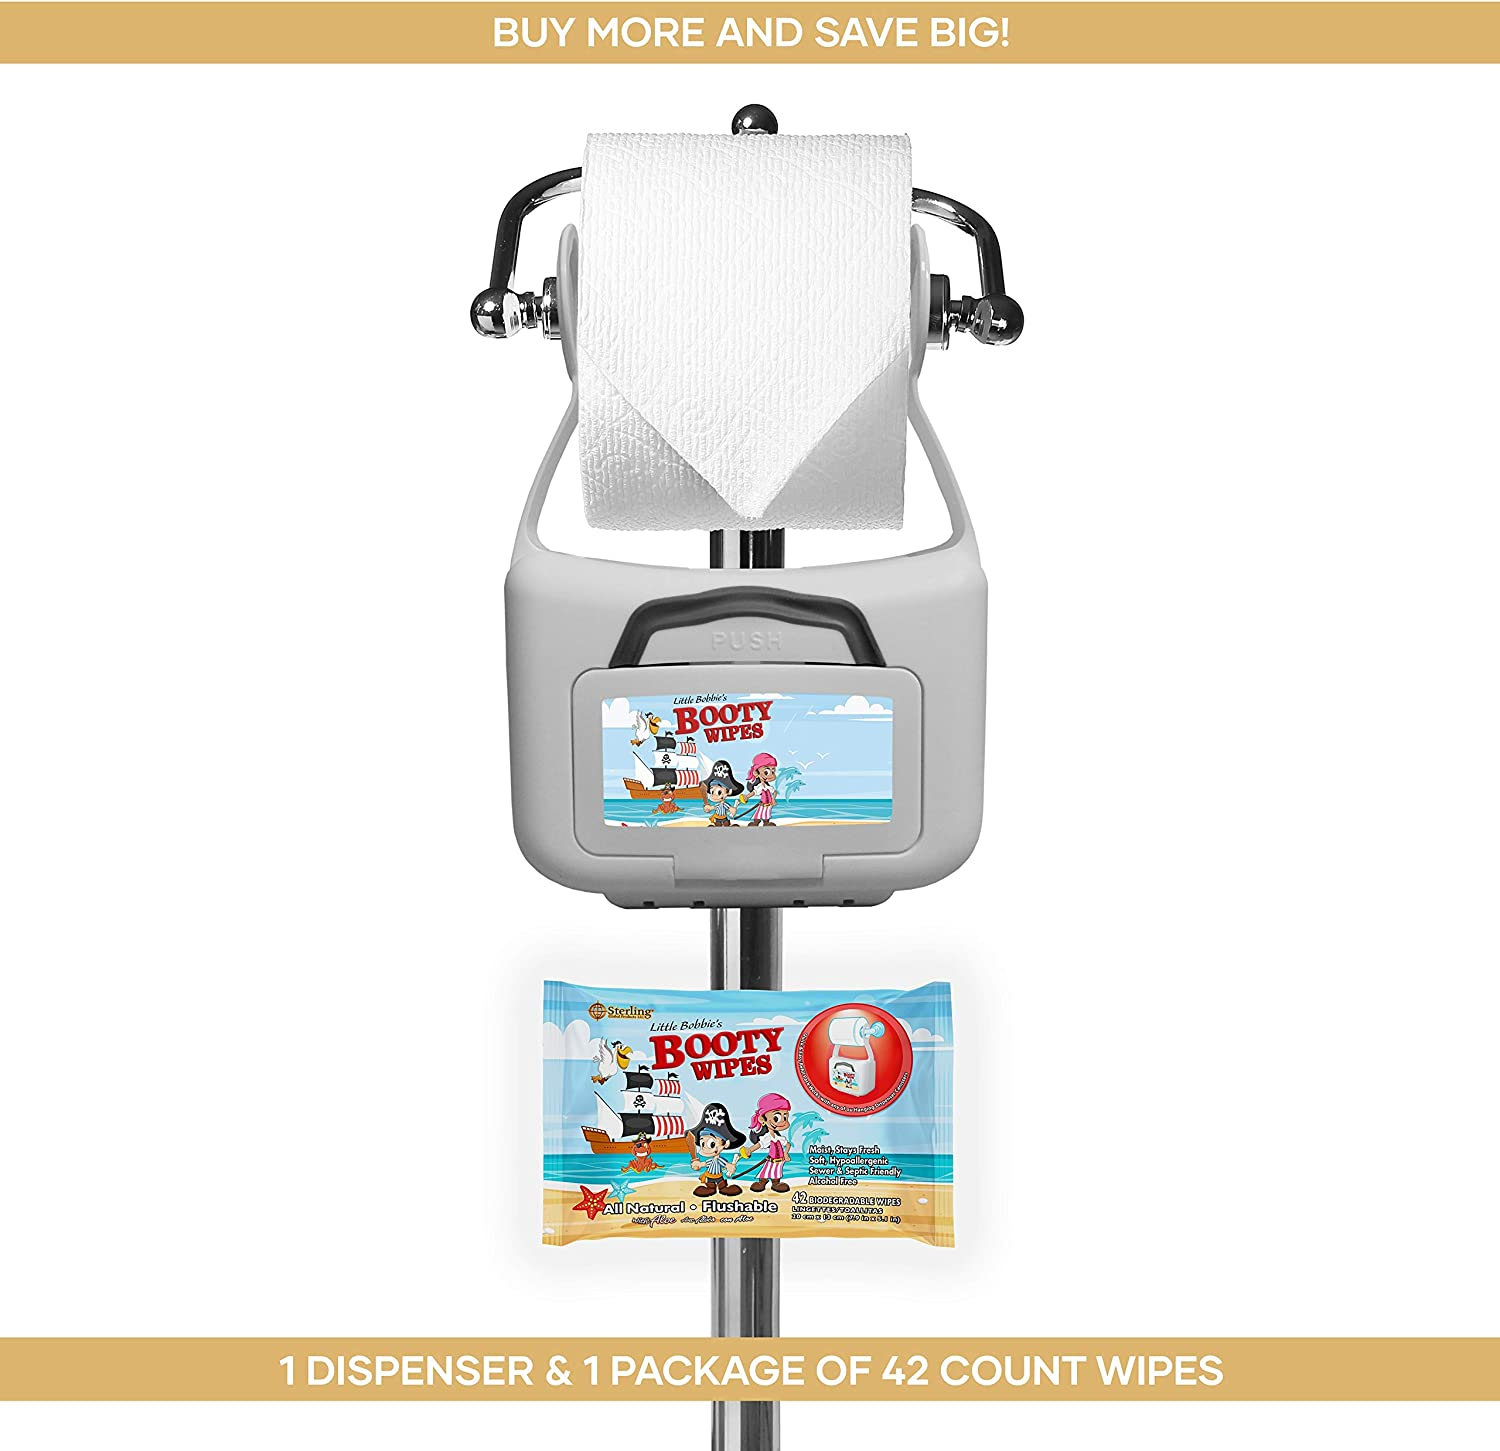 Little Bobbie/'s Booty Wipes Refillable Hanging Flushable Wipes Dispenser /& 1 42ct Flushable All Natural and Biodegradable Refill Wipes Pack